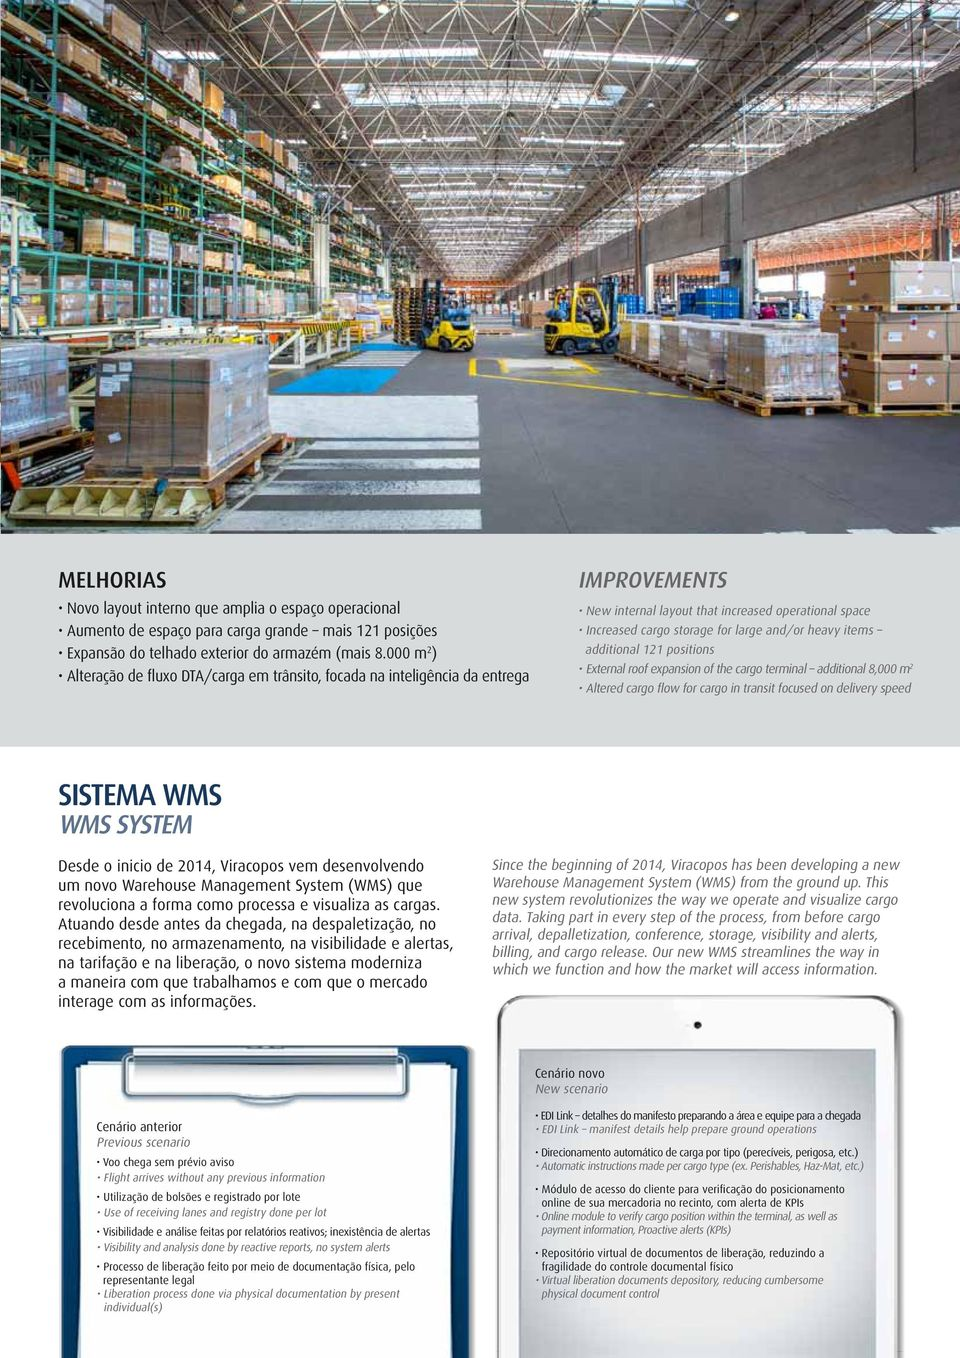 items additional 121 positions External roof expansion of the cargo terminal additional 8,000 m 2 Altered cargo flow for cargo in transit focused on delivery speed SISTEMA WMS WMS System Desde o